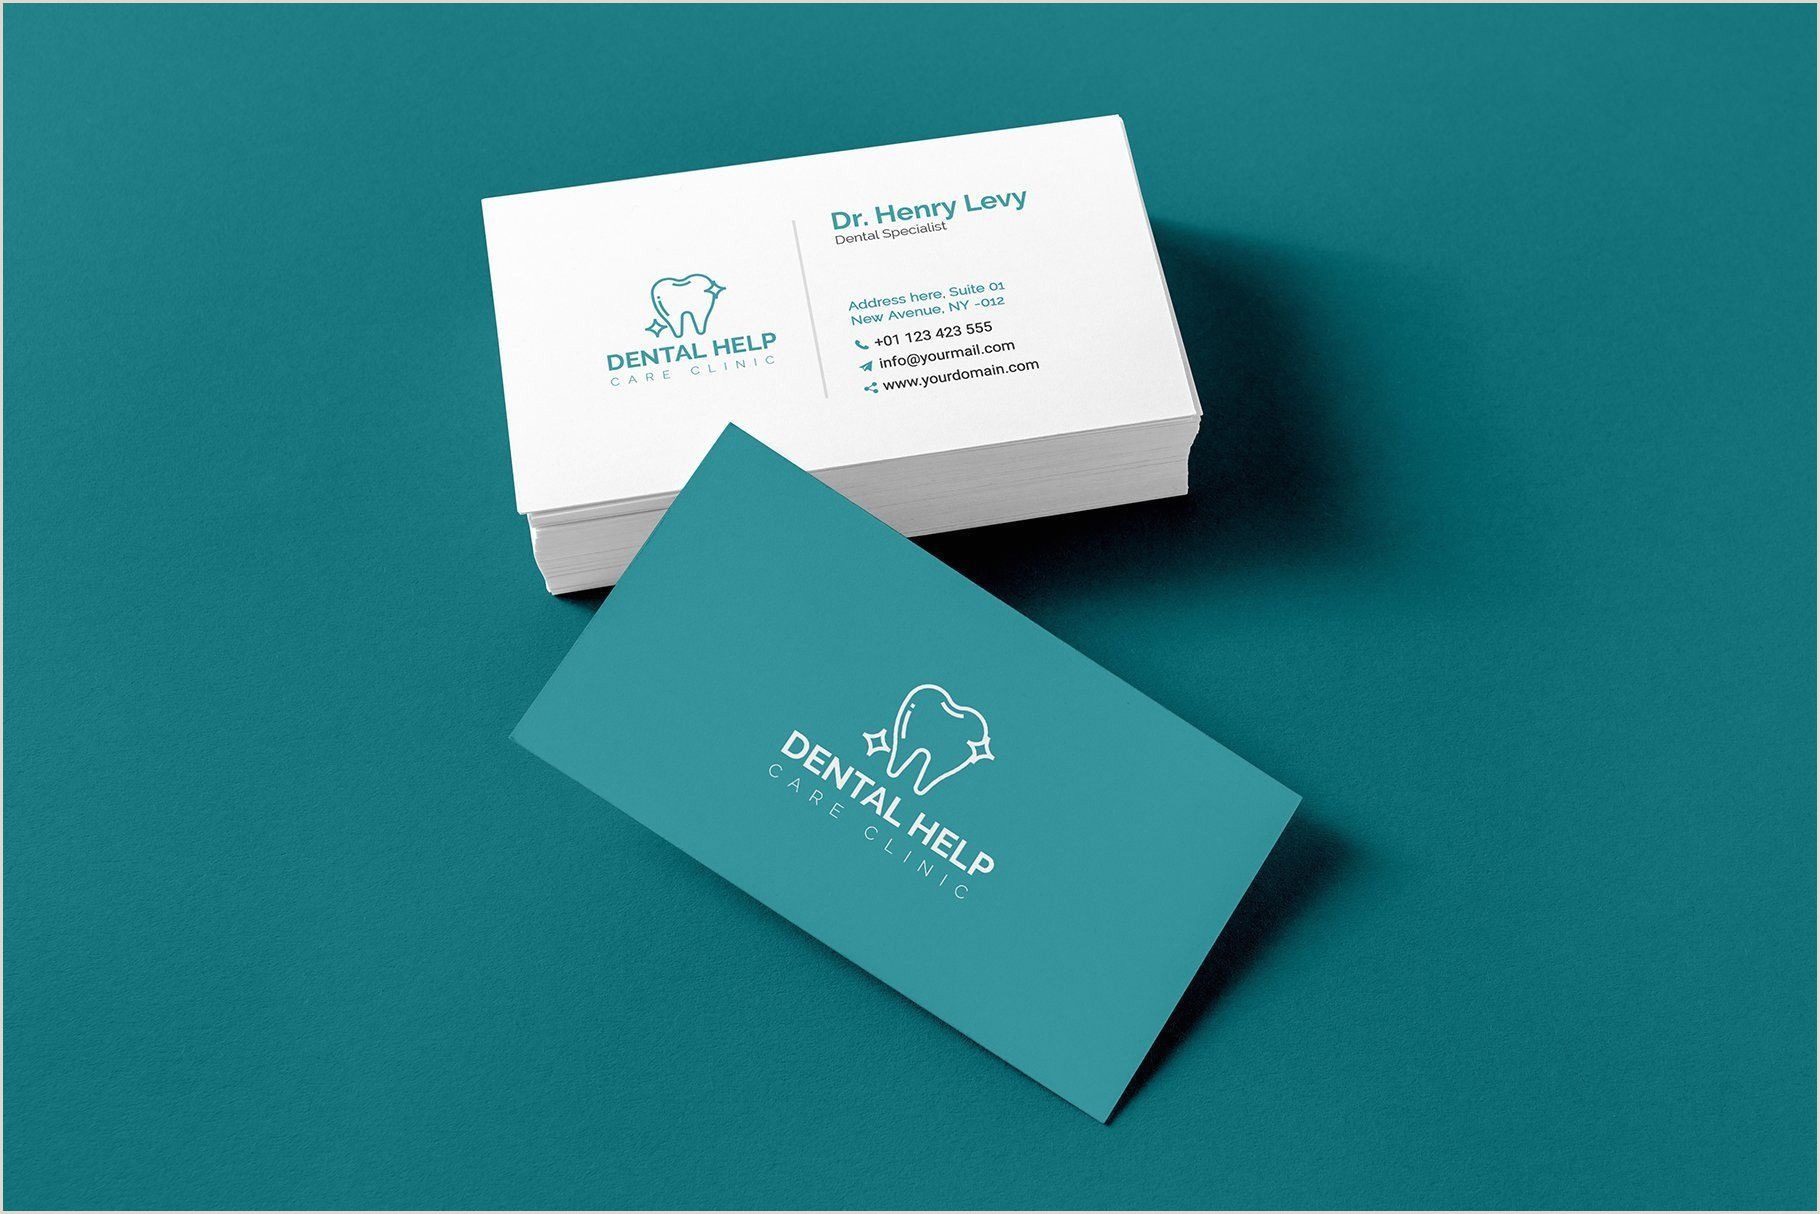 What Are Business Cards Used For Dentist Business Card Templates In 2020